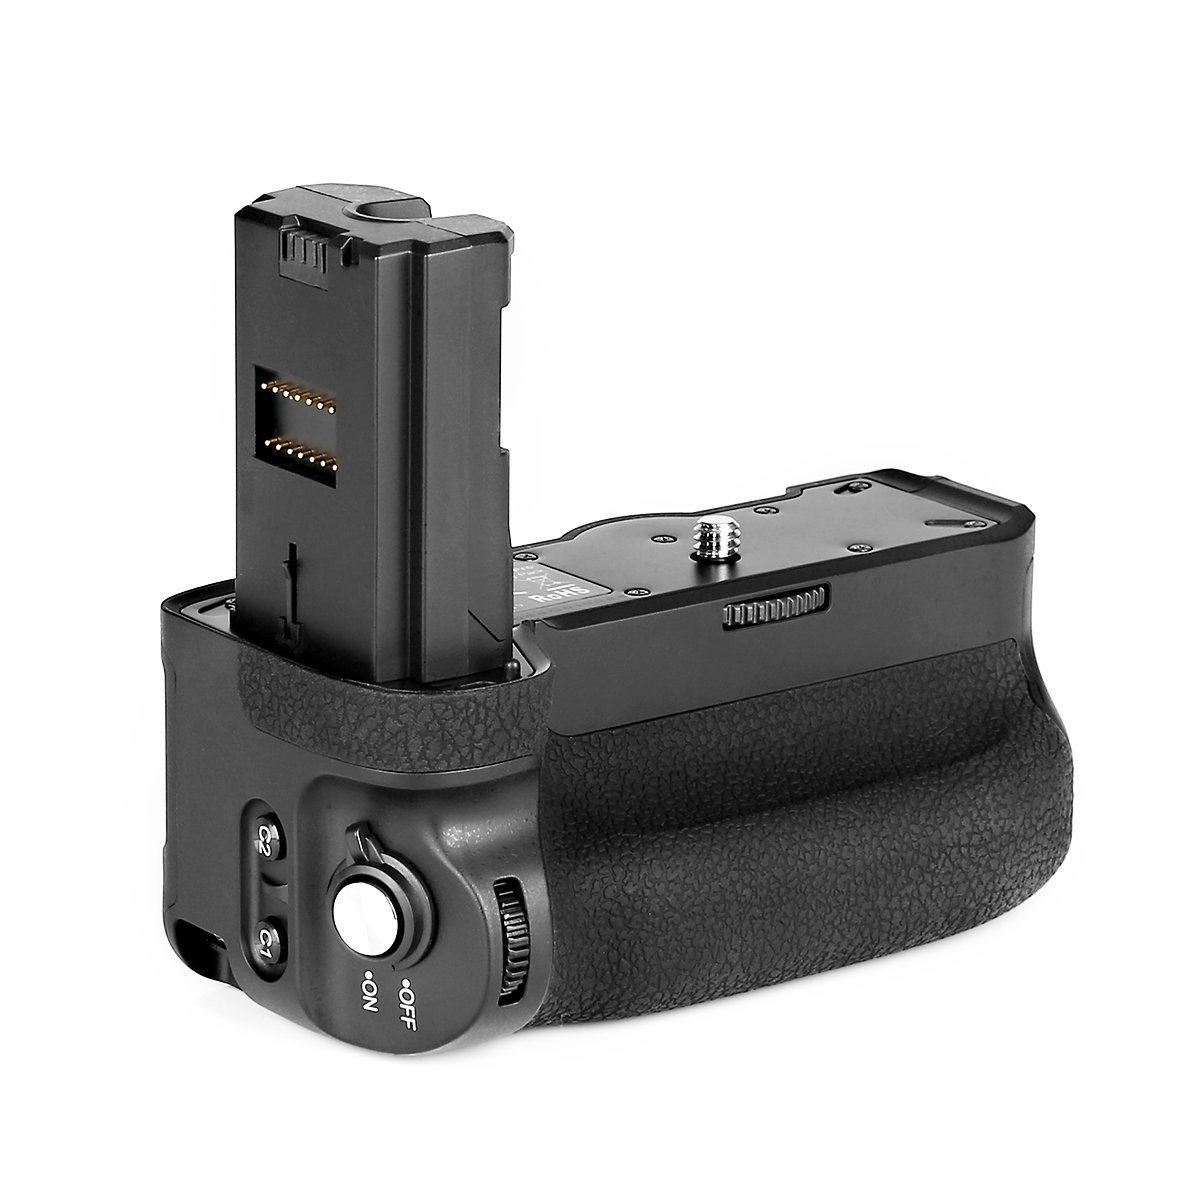 Meike MK-A9 Battery Handy Grip Control Shooting Vertical-hooting Fsunction for Sony A9 A7III A73 A7M3 A7RIII A7R3 CameraMeike MK-A9 Battery Handy Grip Control Shooting Vertical-hooting Fsunction for Sony A9 A7III A73 A7M3 A7RIII A7R3 Camera